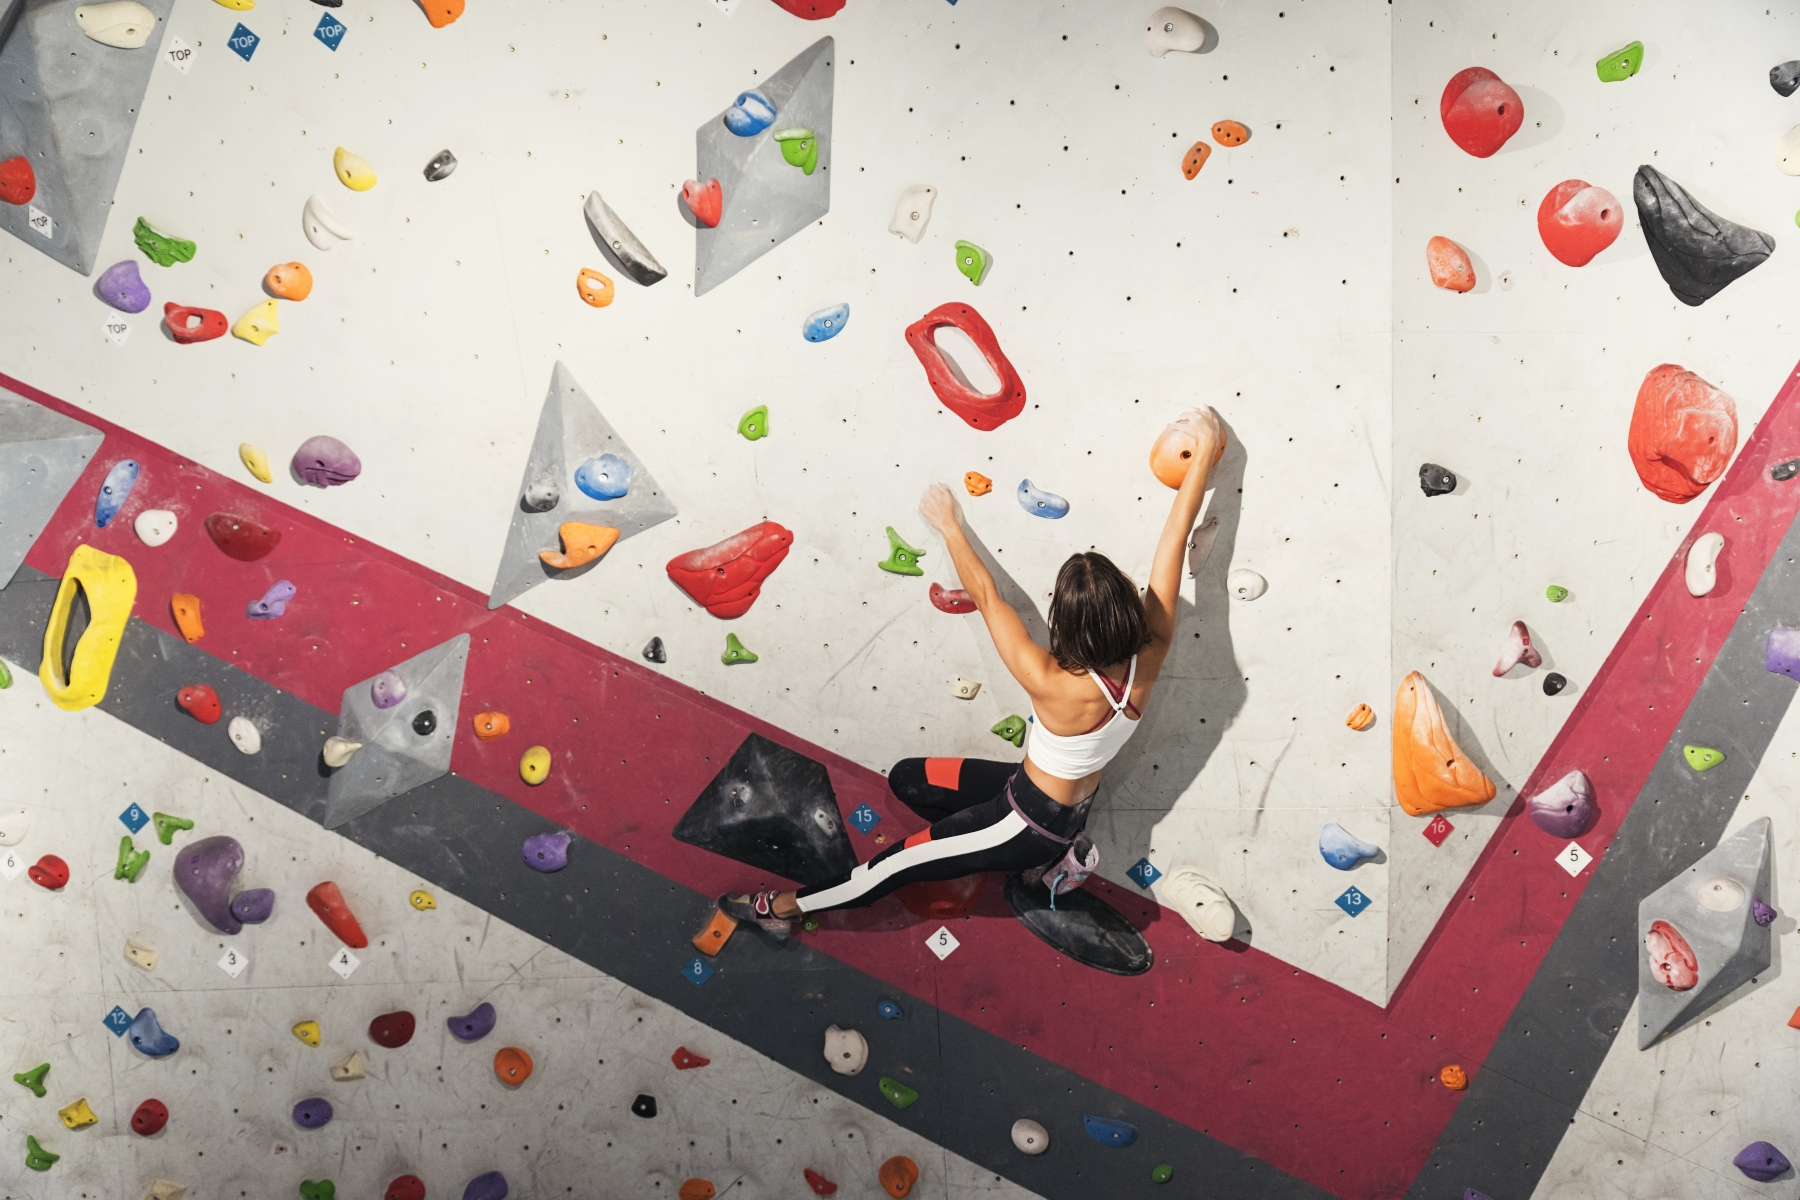 Woman practicing rock climbing on artificial wall indoors. Active lifestyle and bouldering concept. – ©AdobeStock